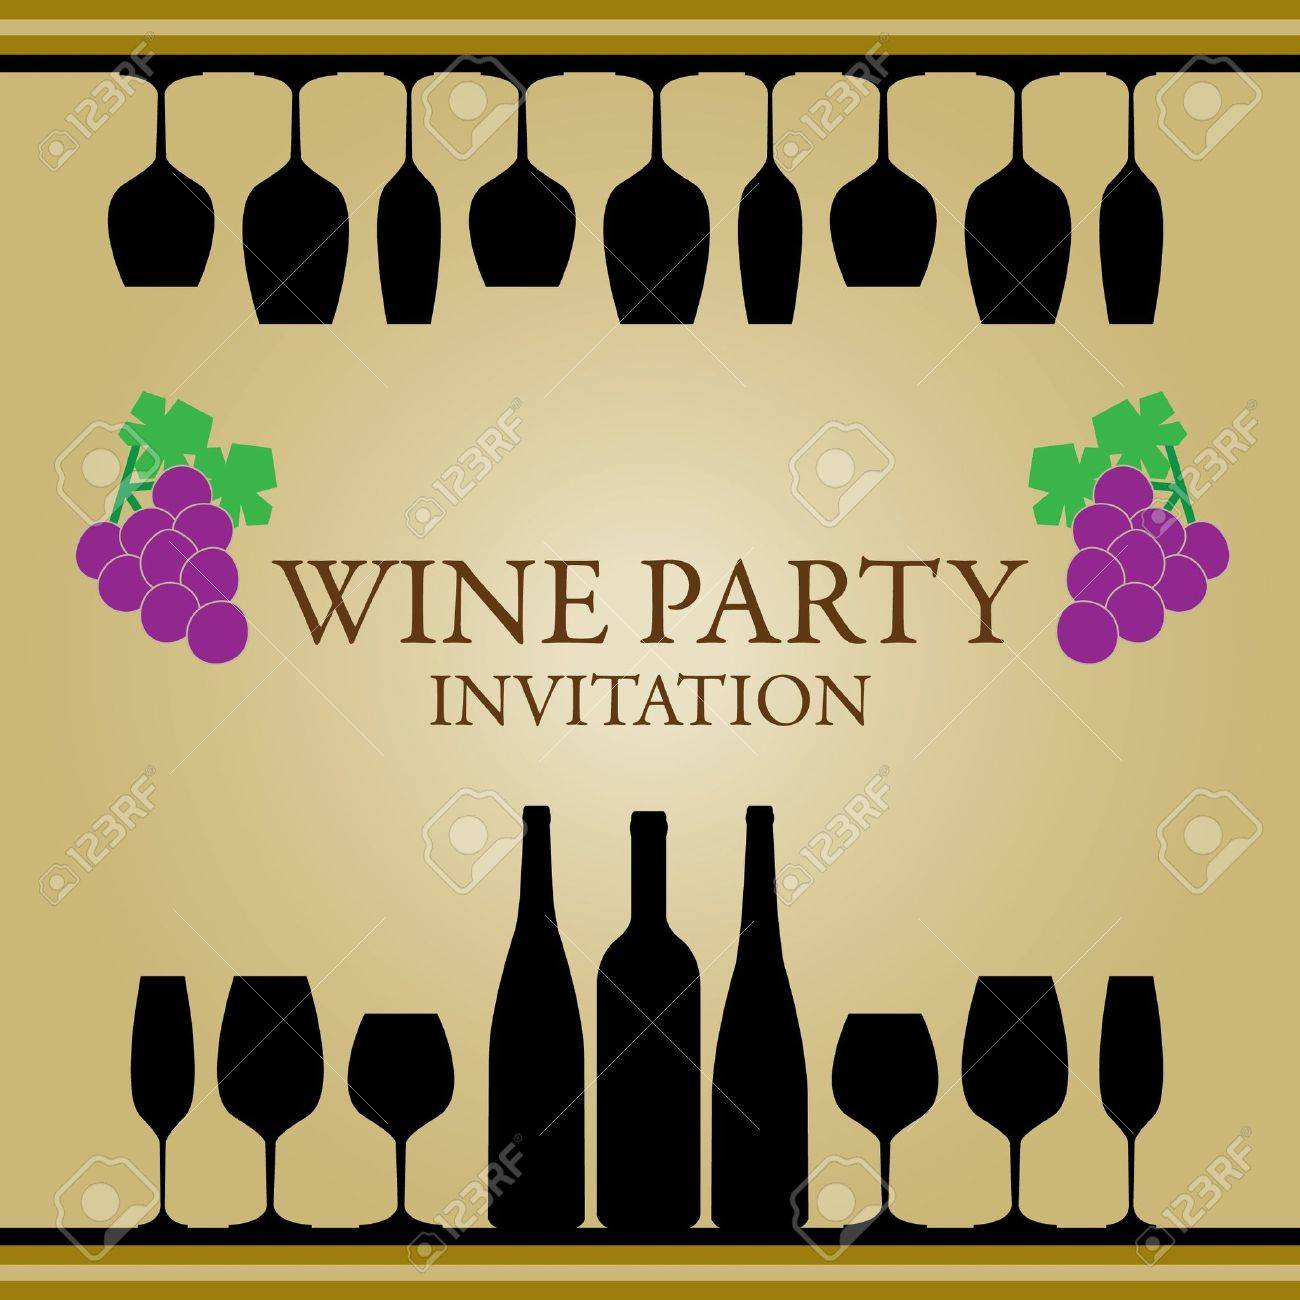 Wine Party Invitation Royalty Free Cliparts, Vectors, And Stock ...